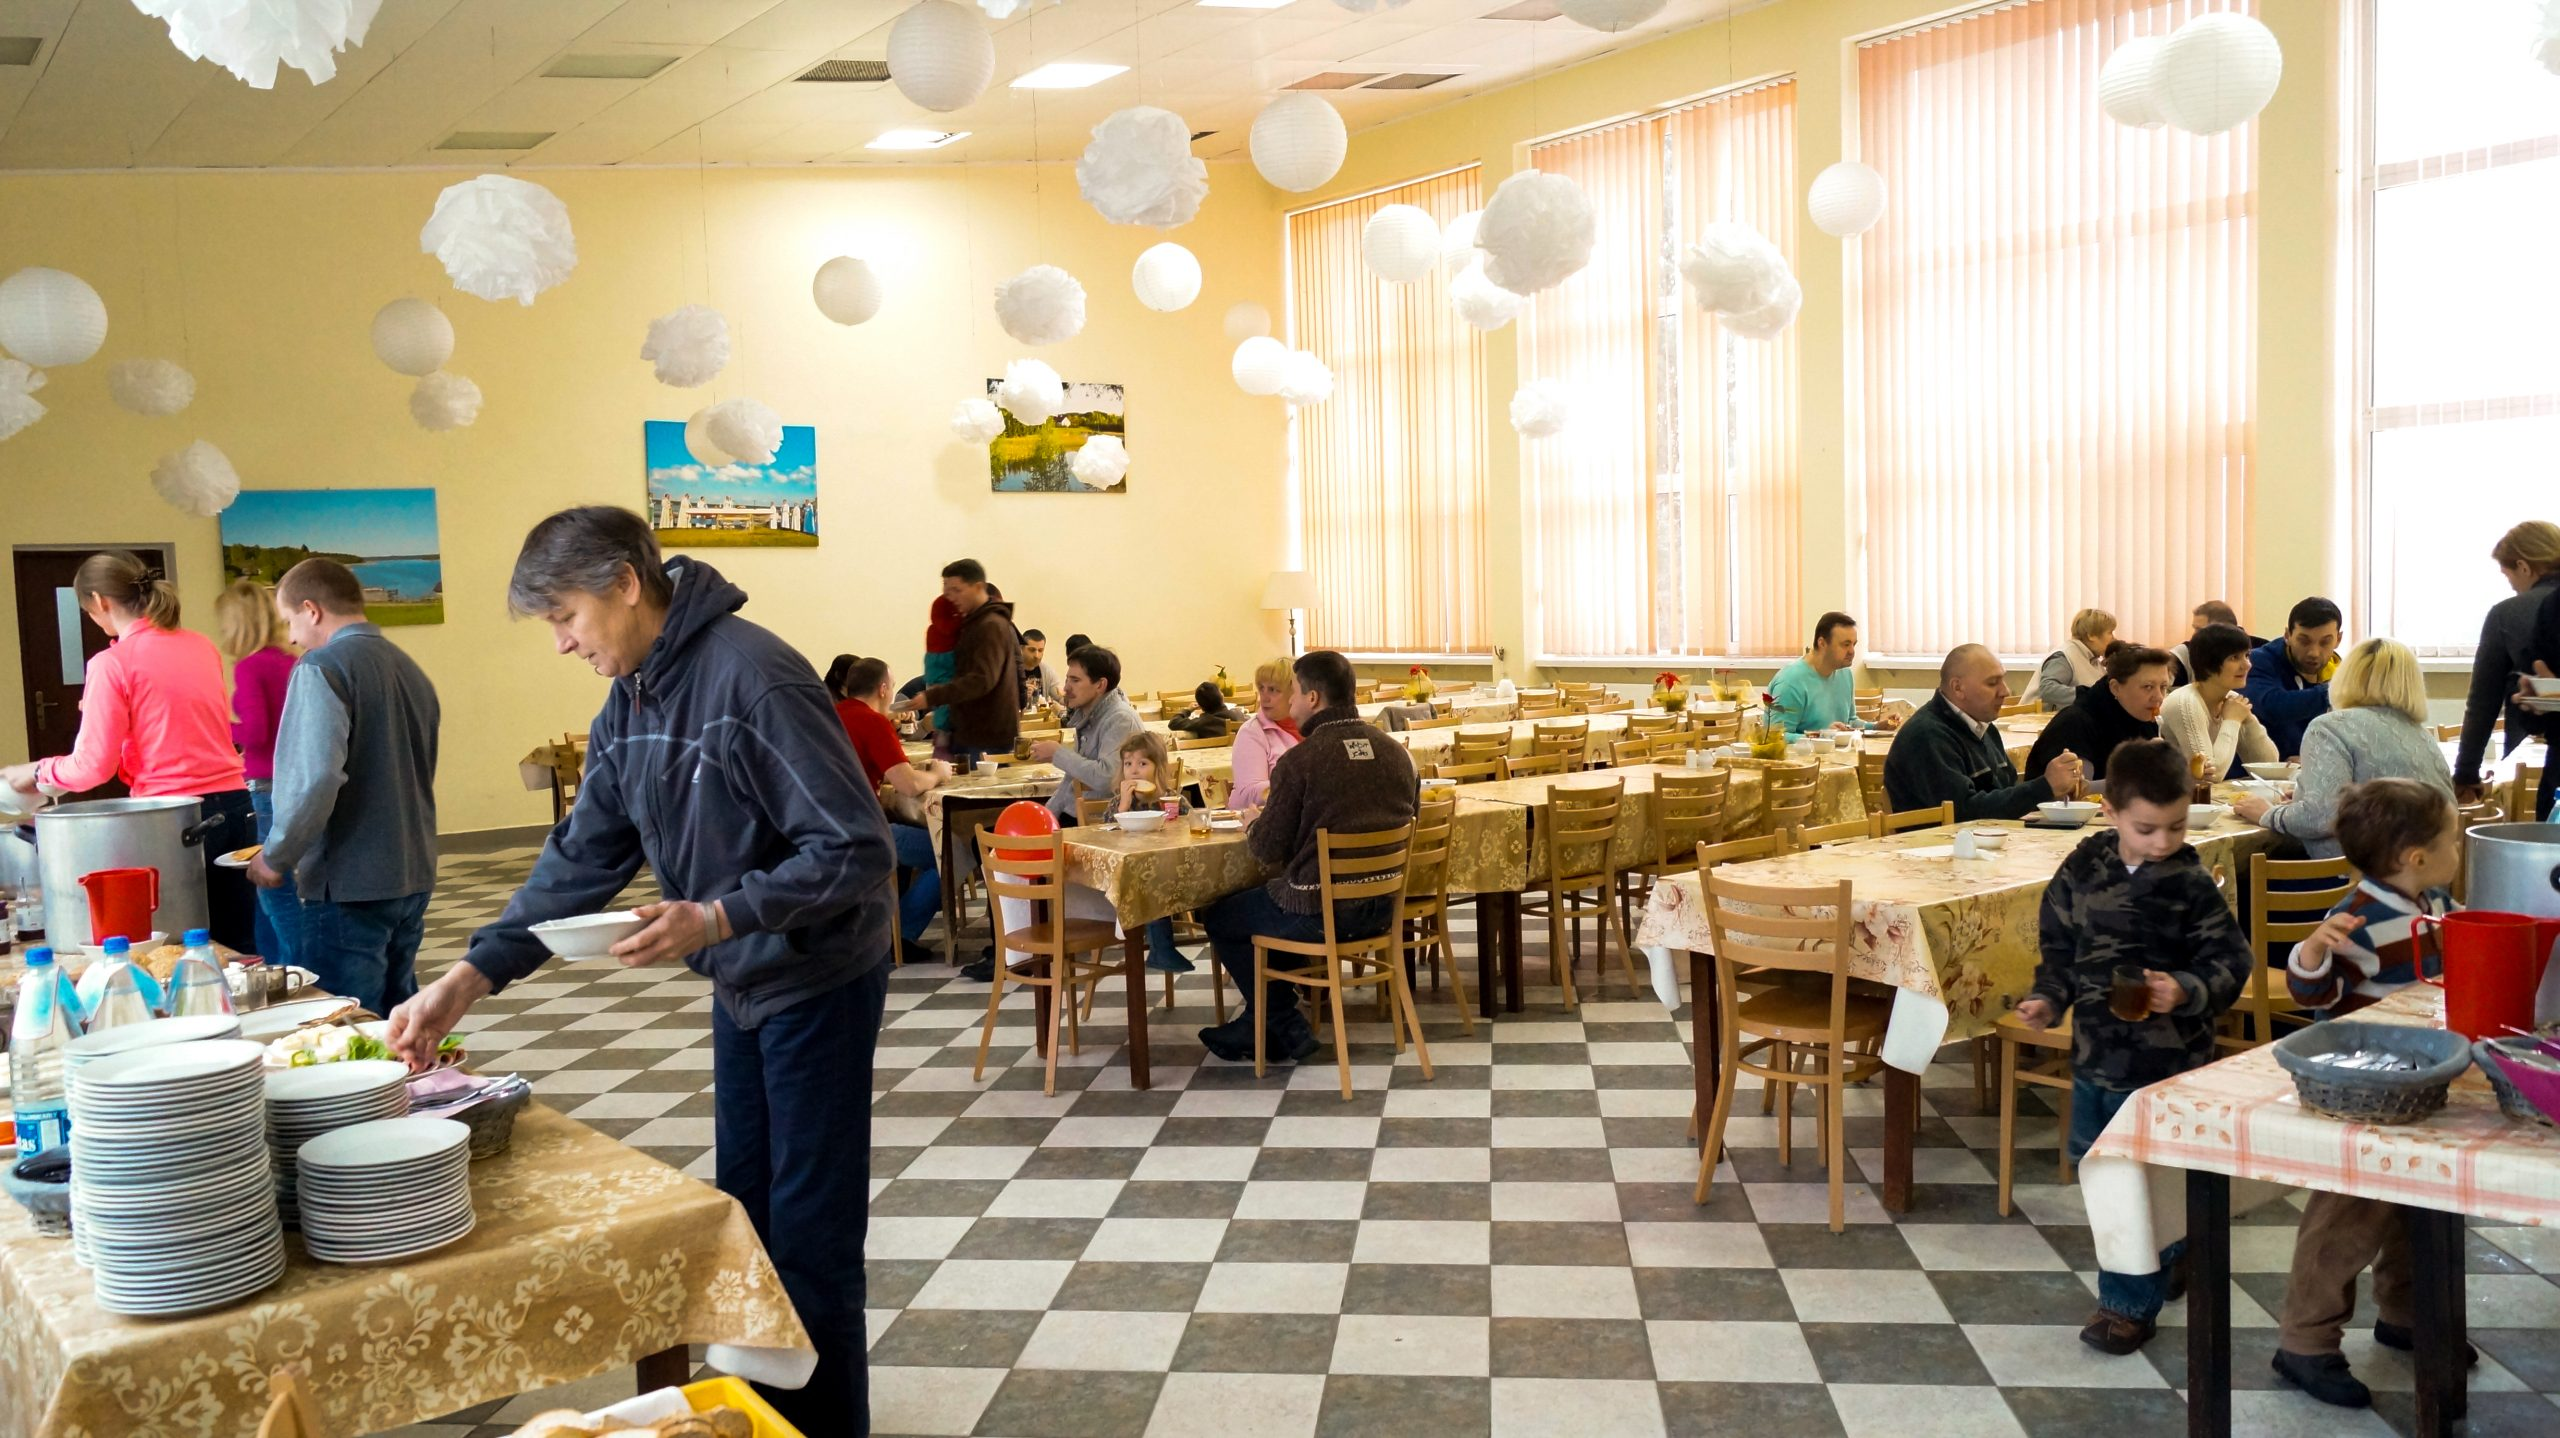 Lunchroom in Caritas Rybaki Center, Poland